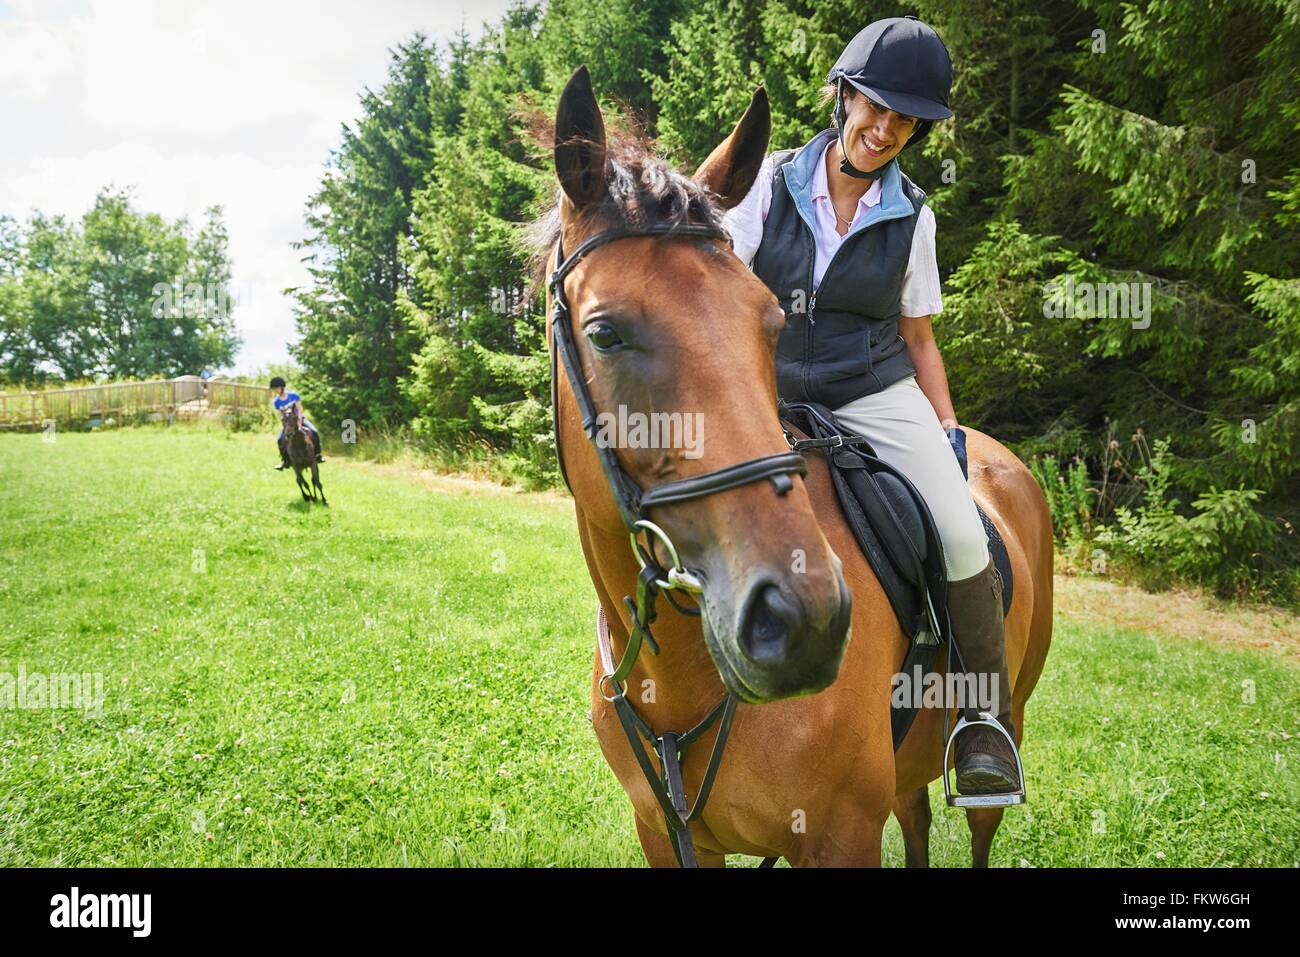 horse riding boots stock photos & horse riding boots stock images